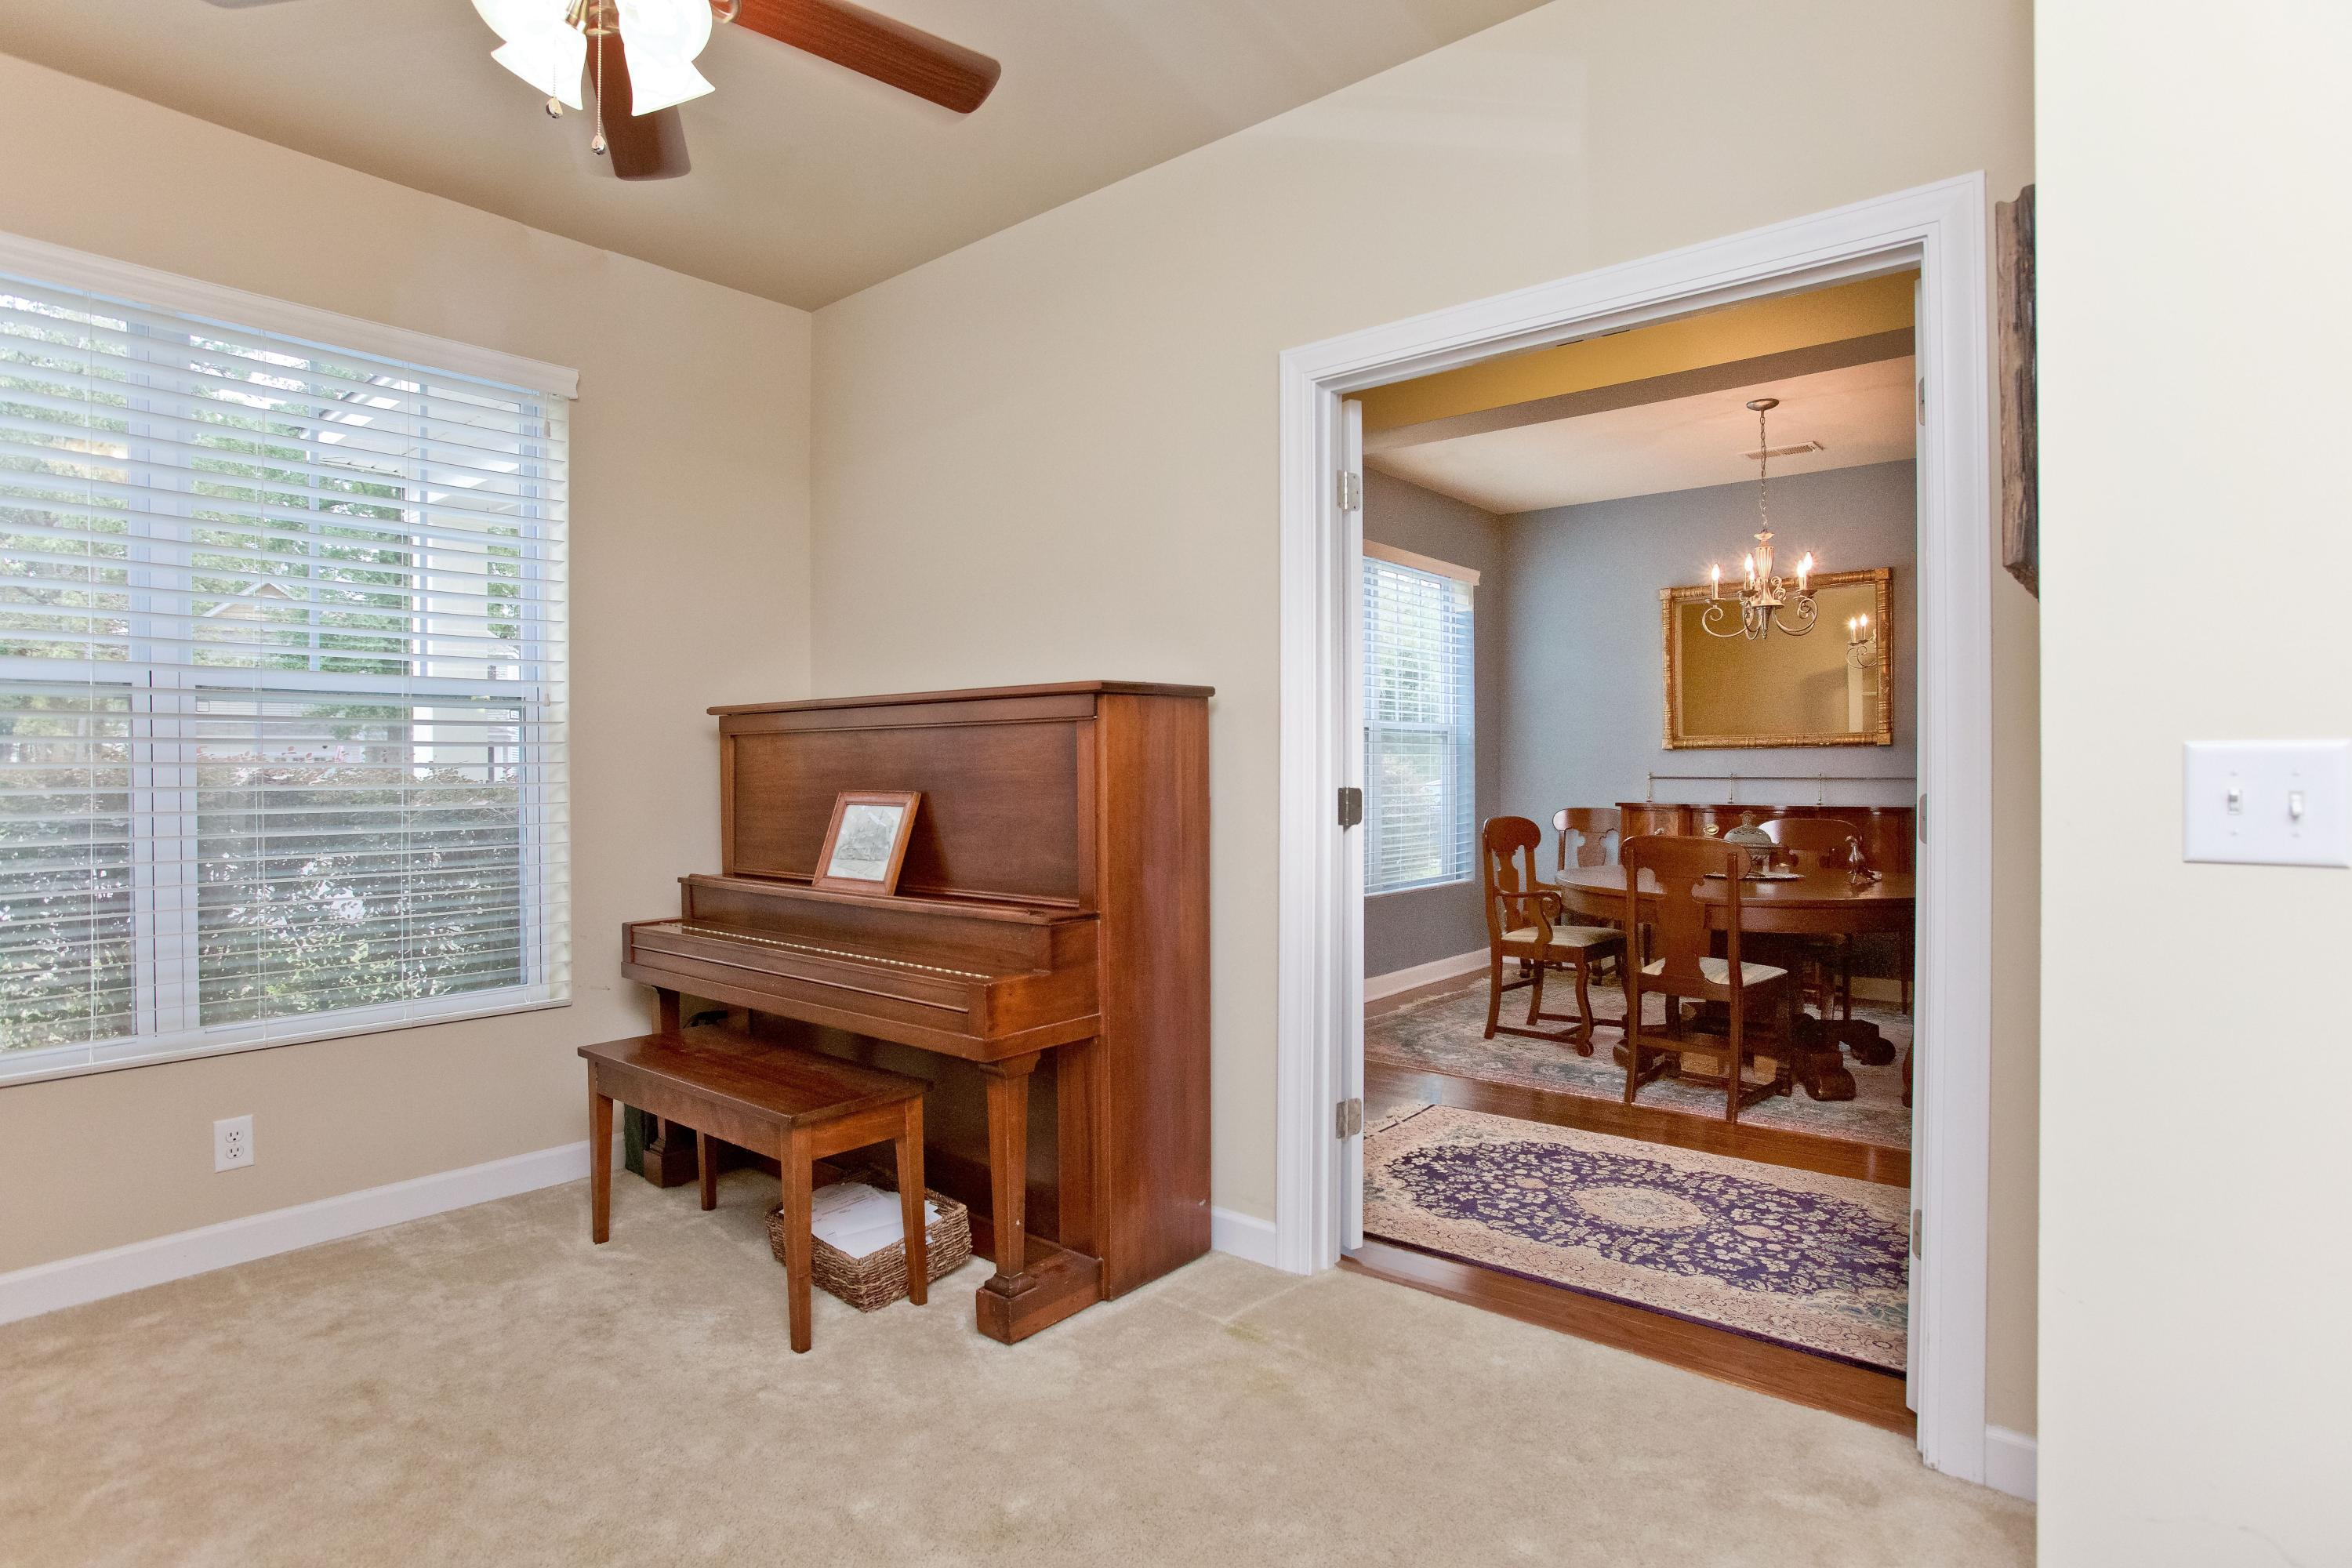 Appian Way Homes For Sale - 8473 Athens, North Charleston, SC - 25